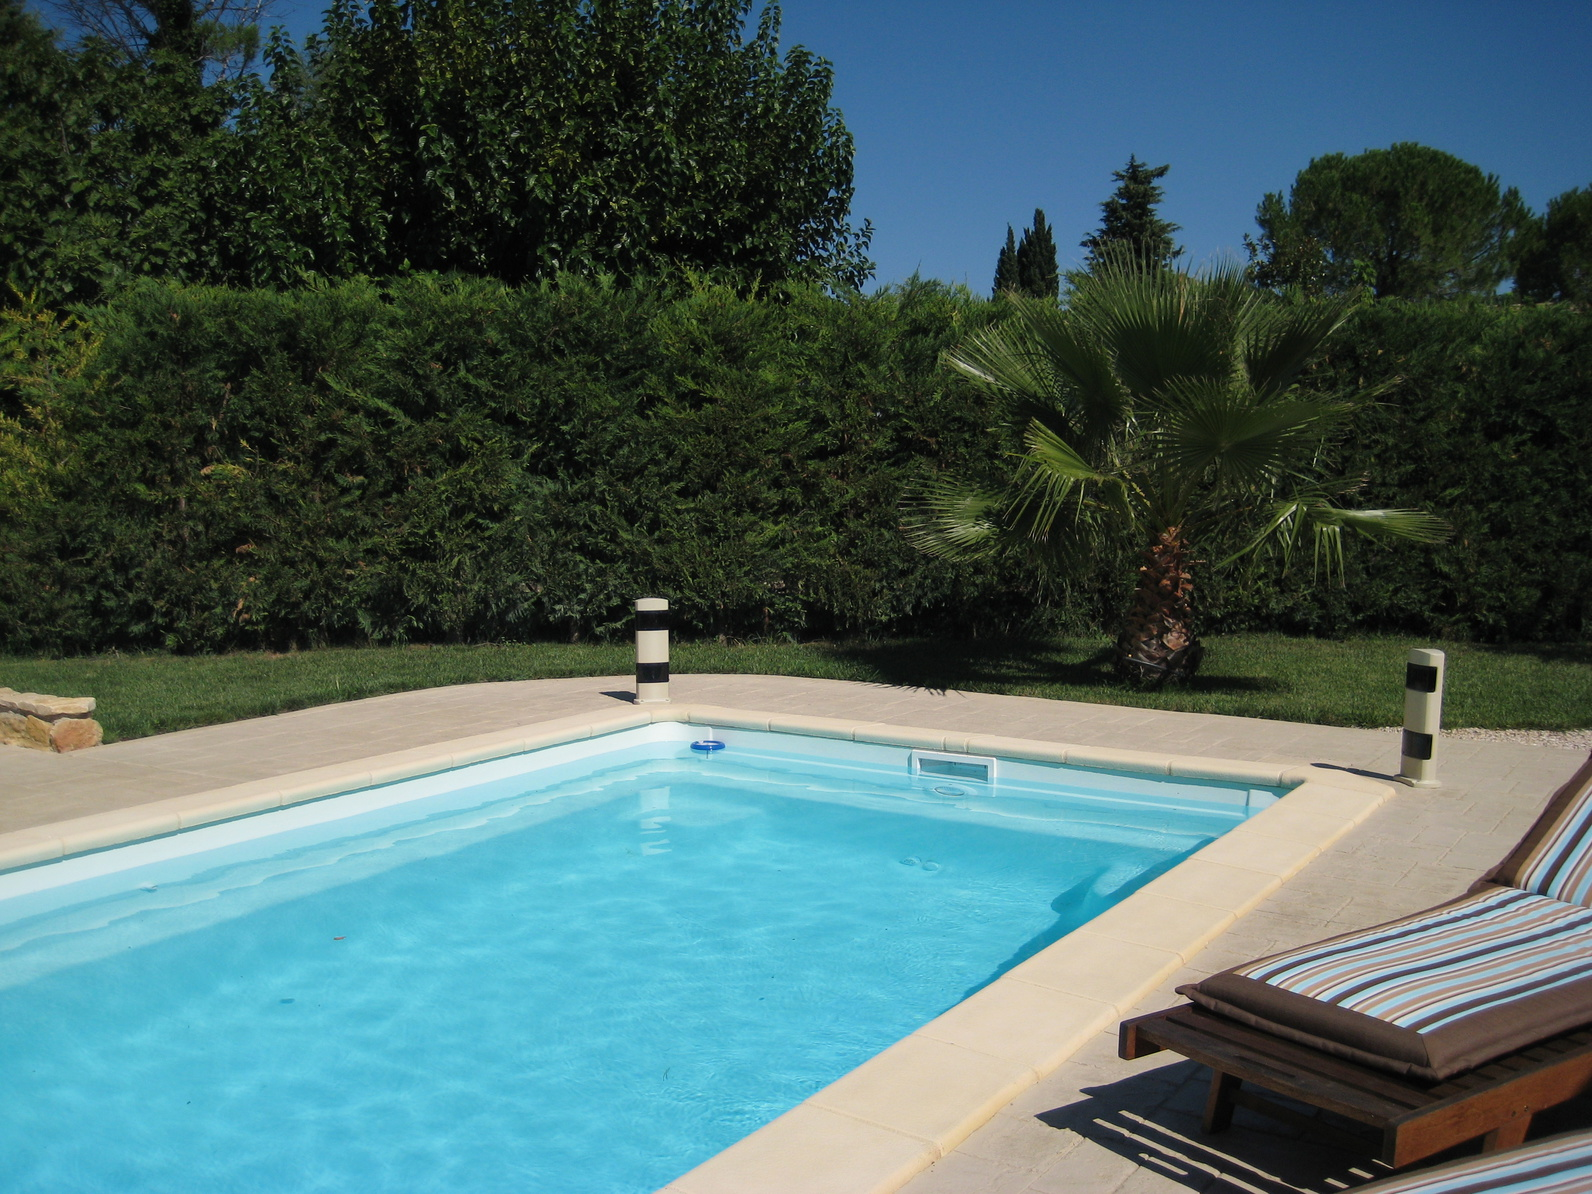 Comment Poser Du Travertin Poser Une Margelle De Piscine